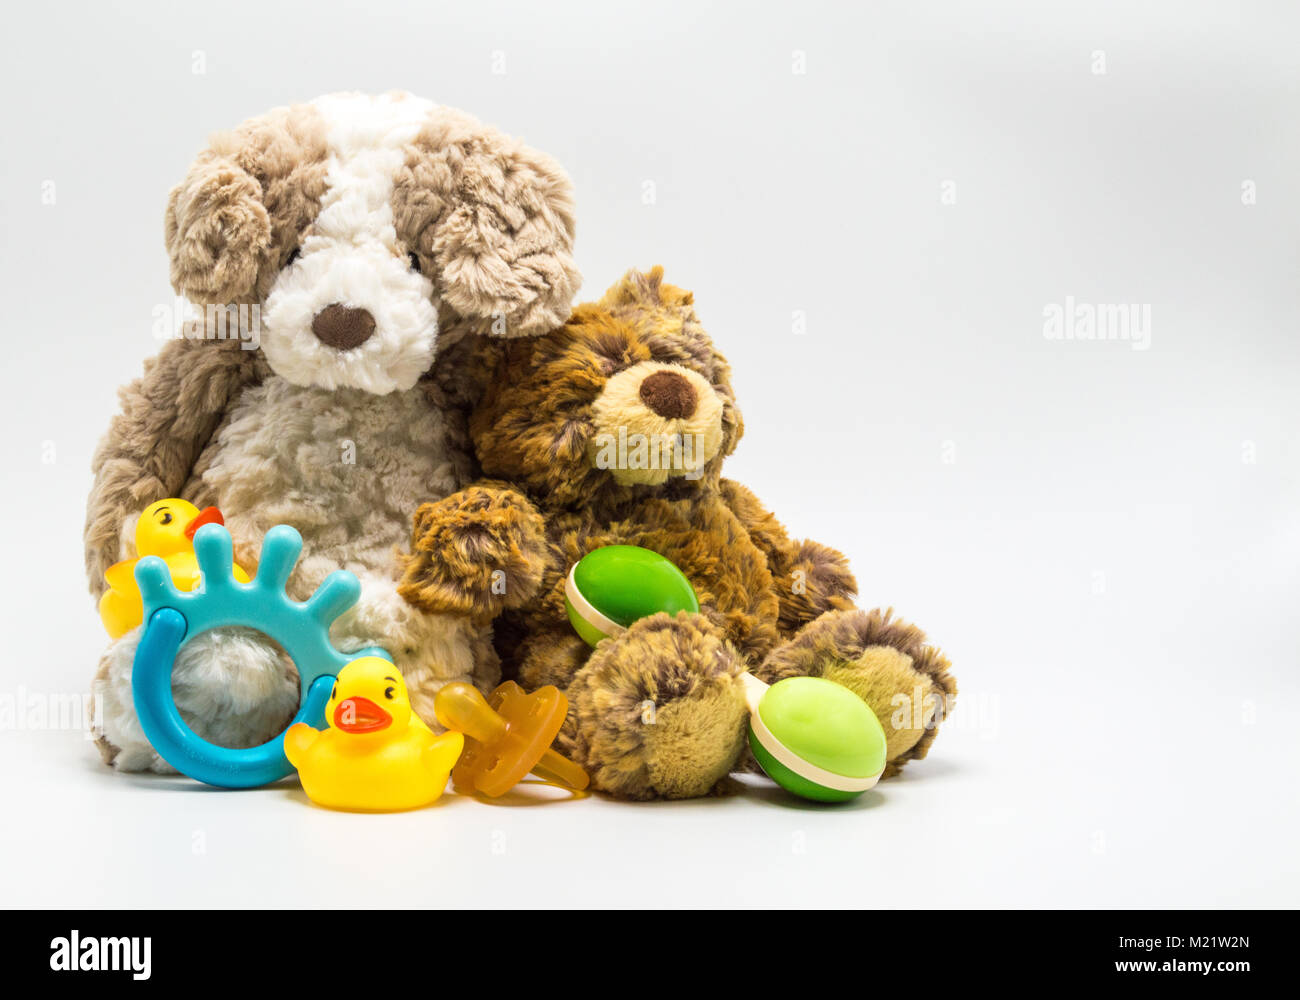 2 plush brown teddy bears with a baby rattle, teething ring, pacifier and 2 rubber ducks isolated on a solid background - Stock Image